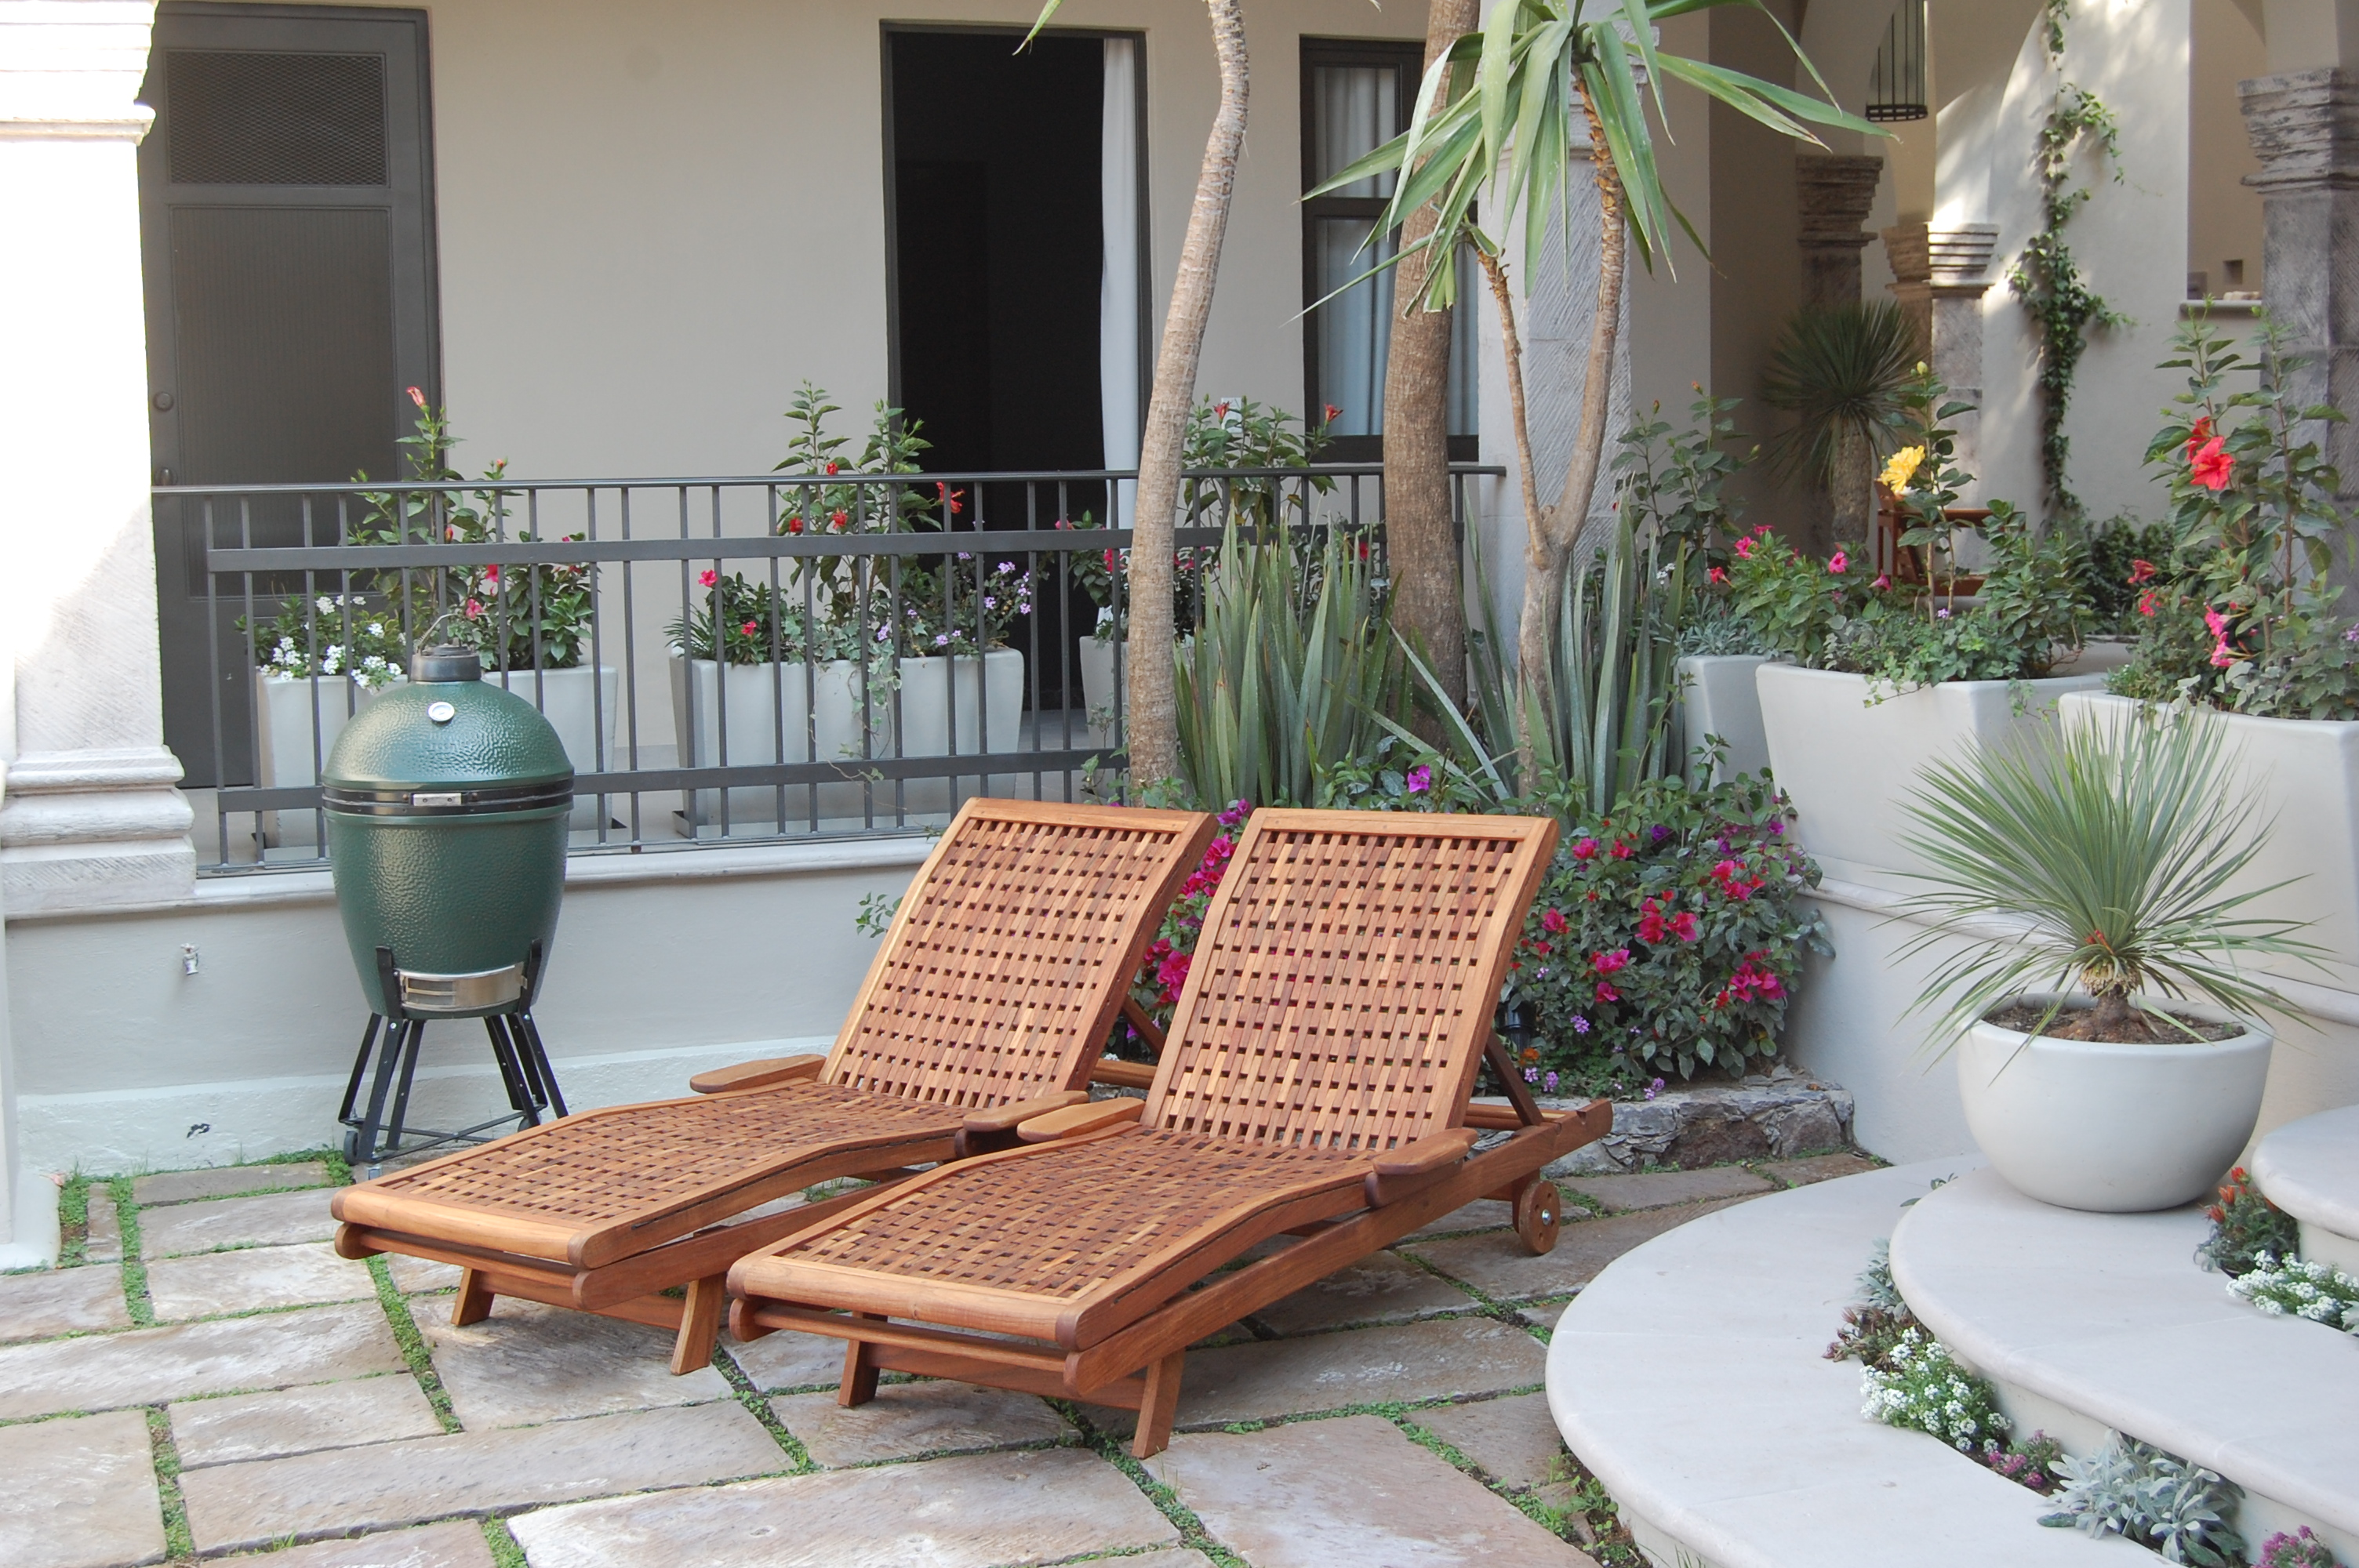 High End Lounge Chair RESTEN Outdoor Furniture